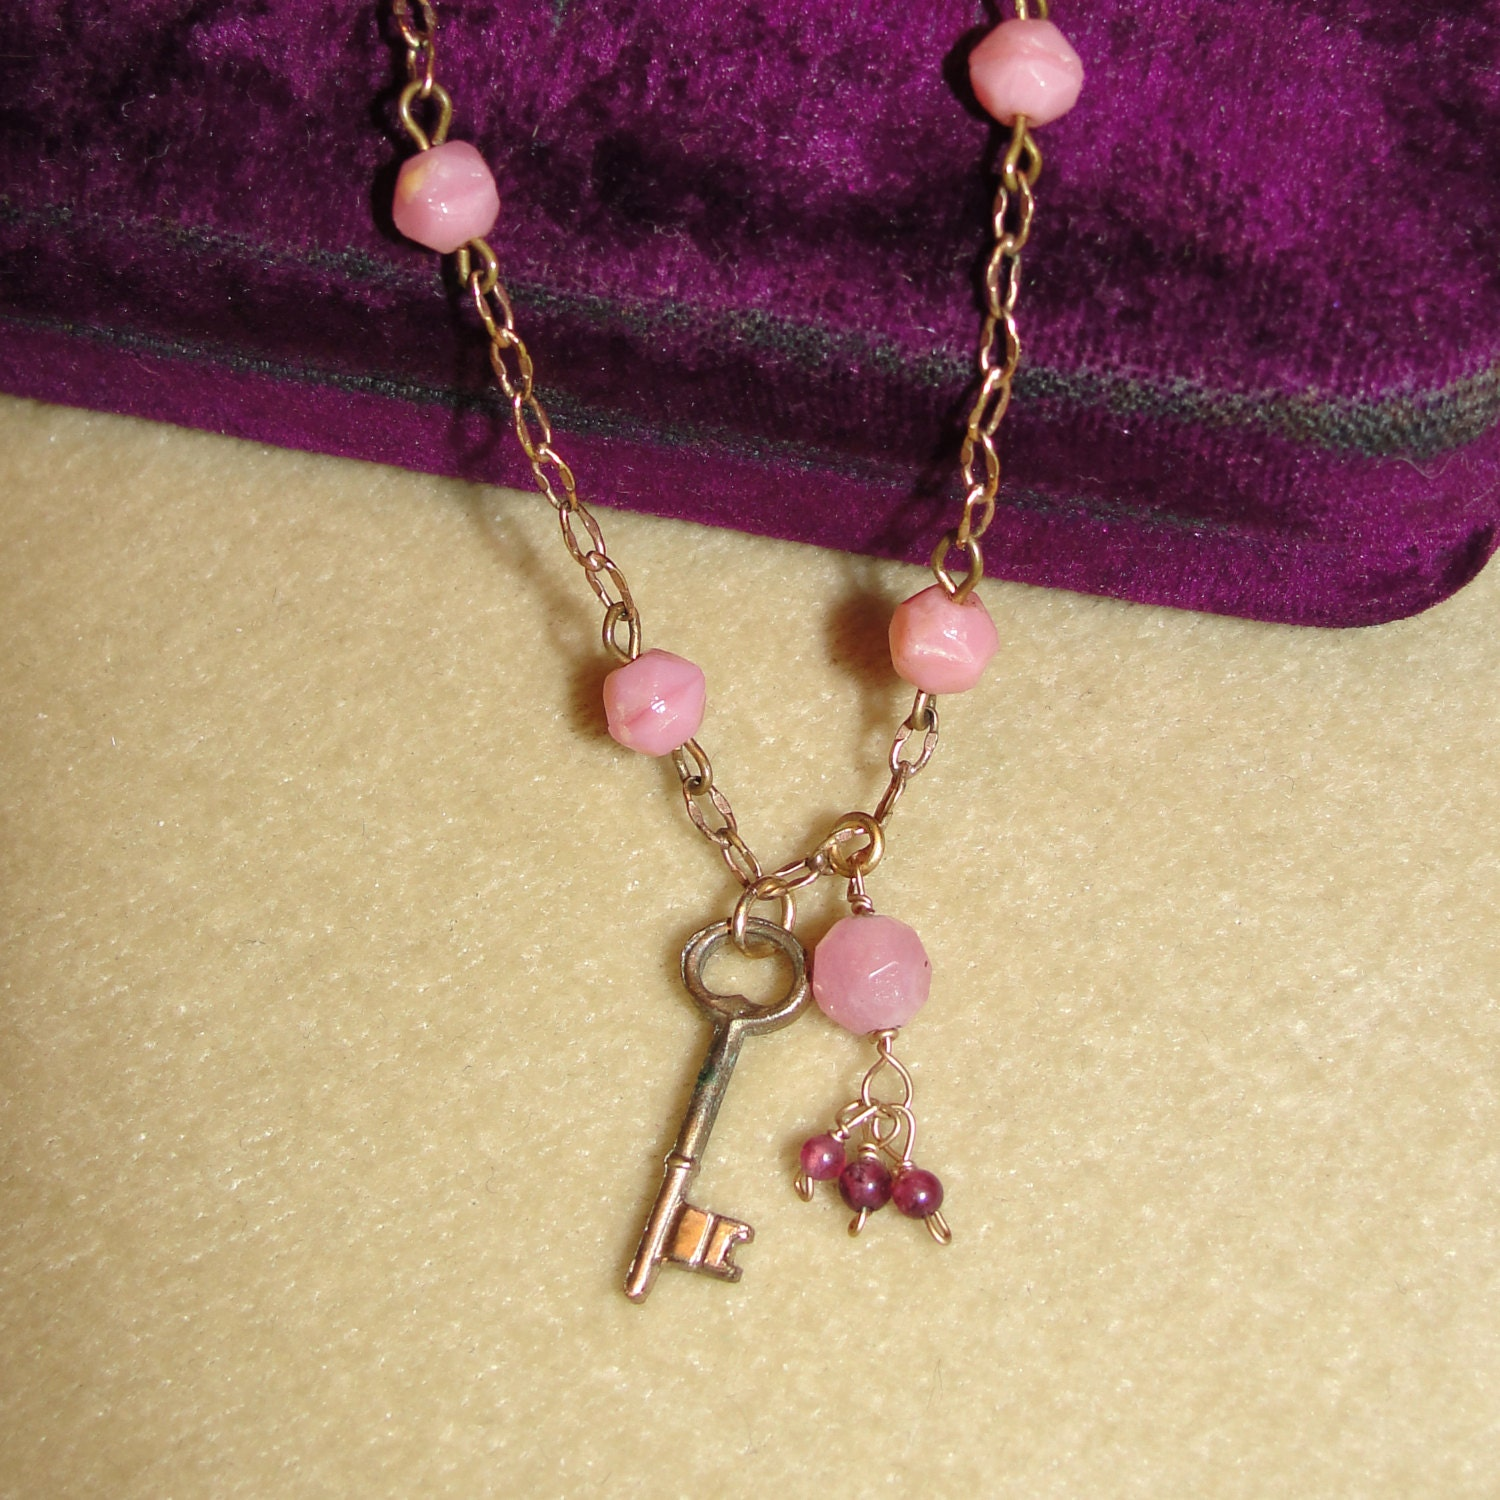 L'Occasion se Trouvera Necklace by NavareJewelry on Etsy :  necklace pink beads vintage delicate